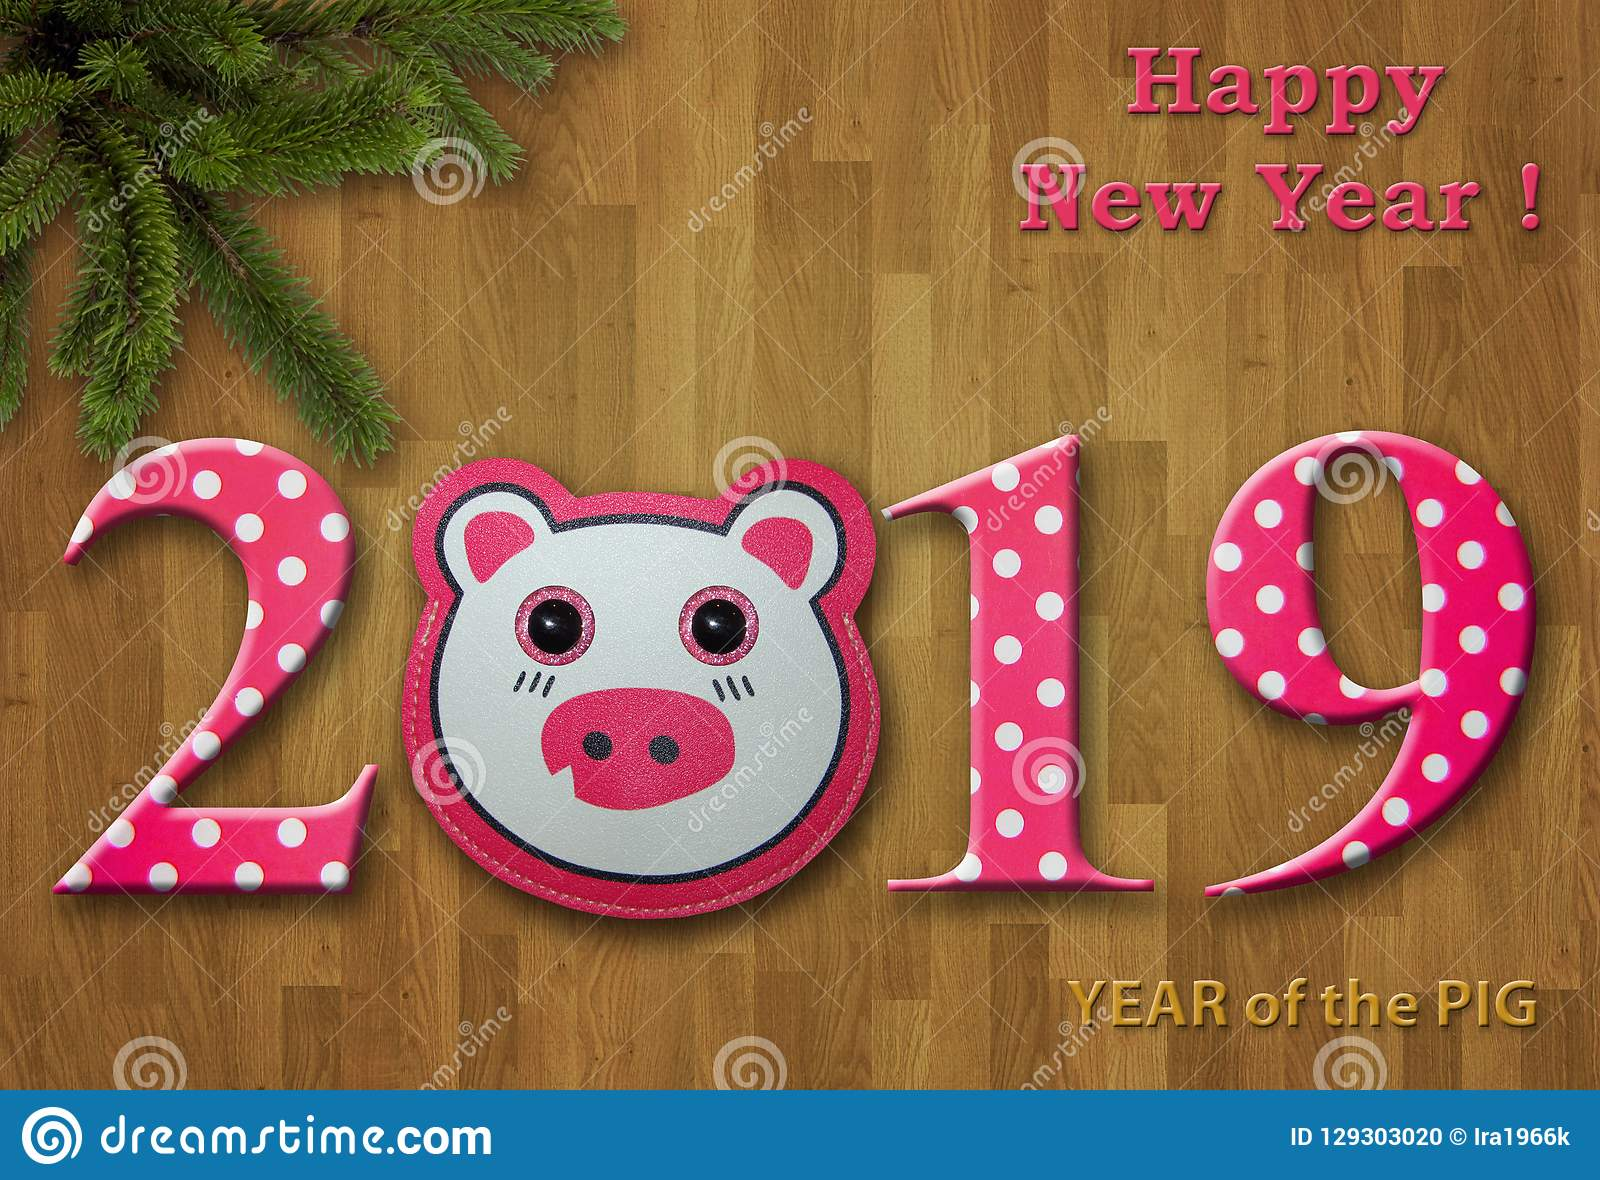 new year 2019 card with a toy pig 1